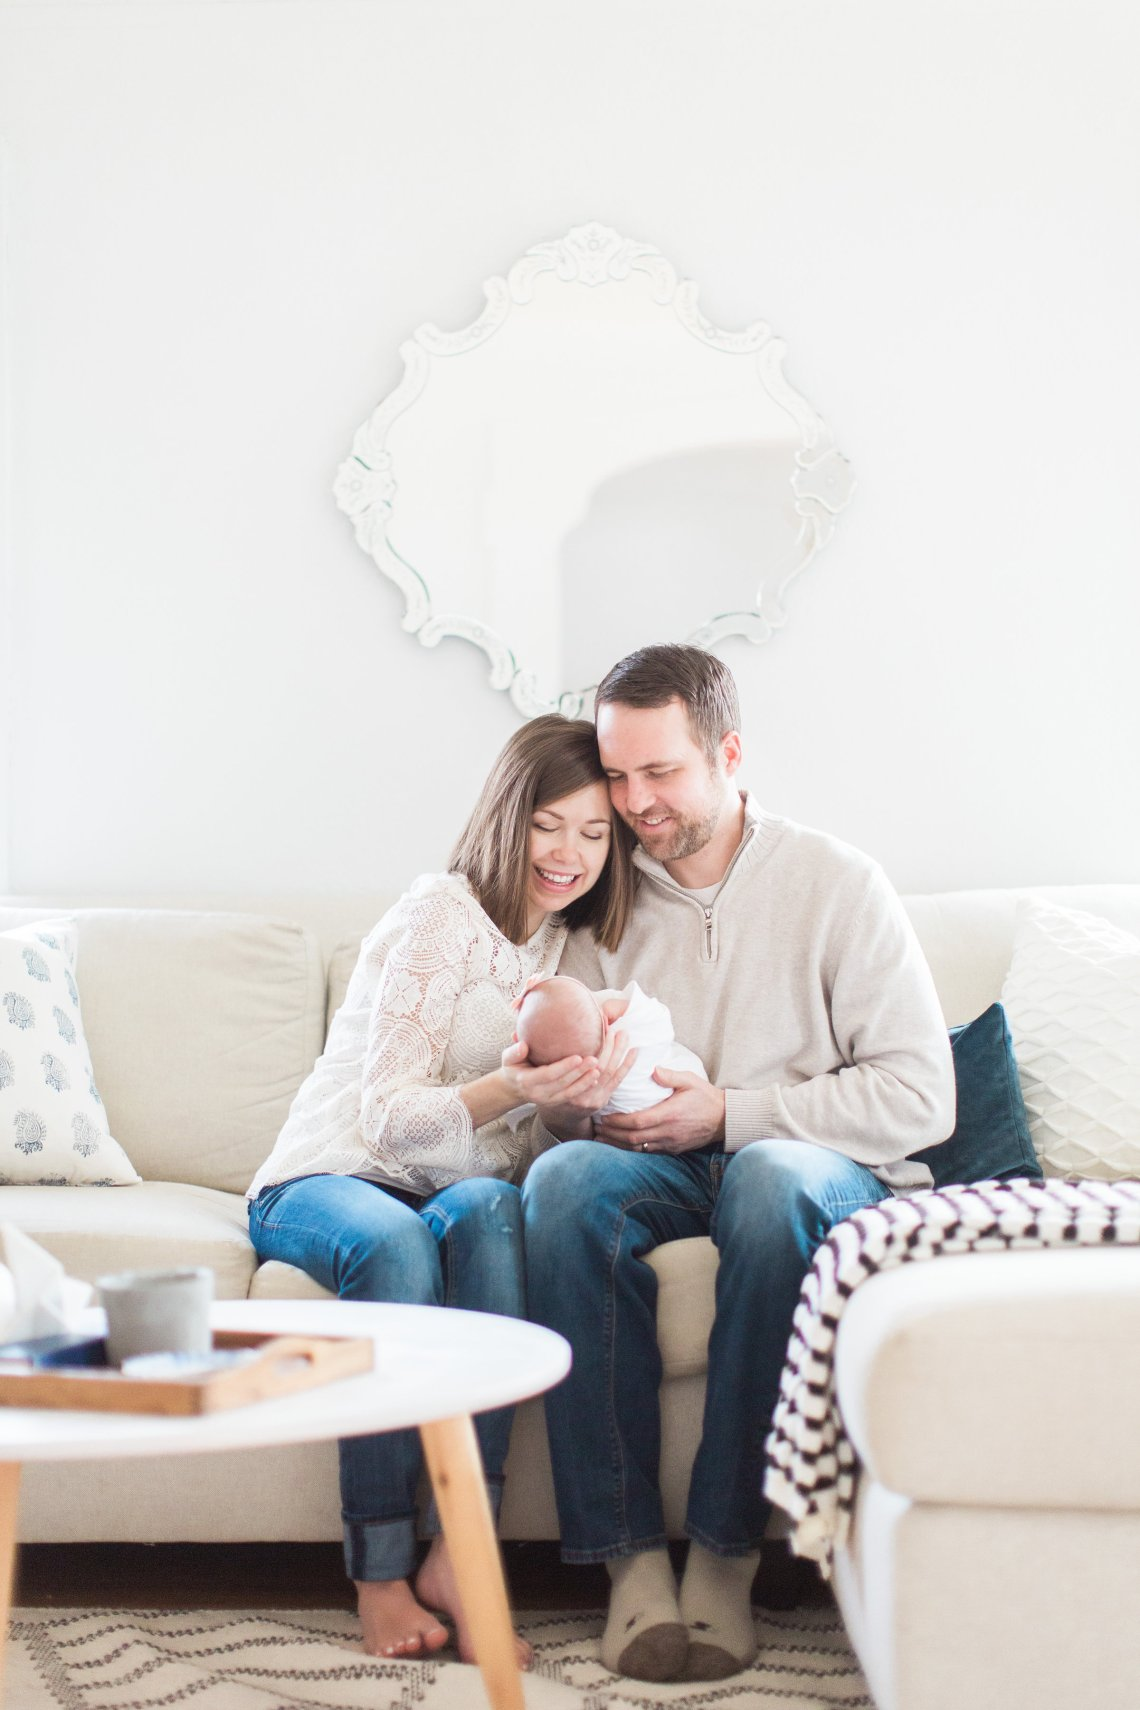 A glimpse inside our life after Sylvia was born + a newborn photographer checklist for finding the right person to capture your family. Click for details!